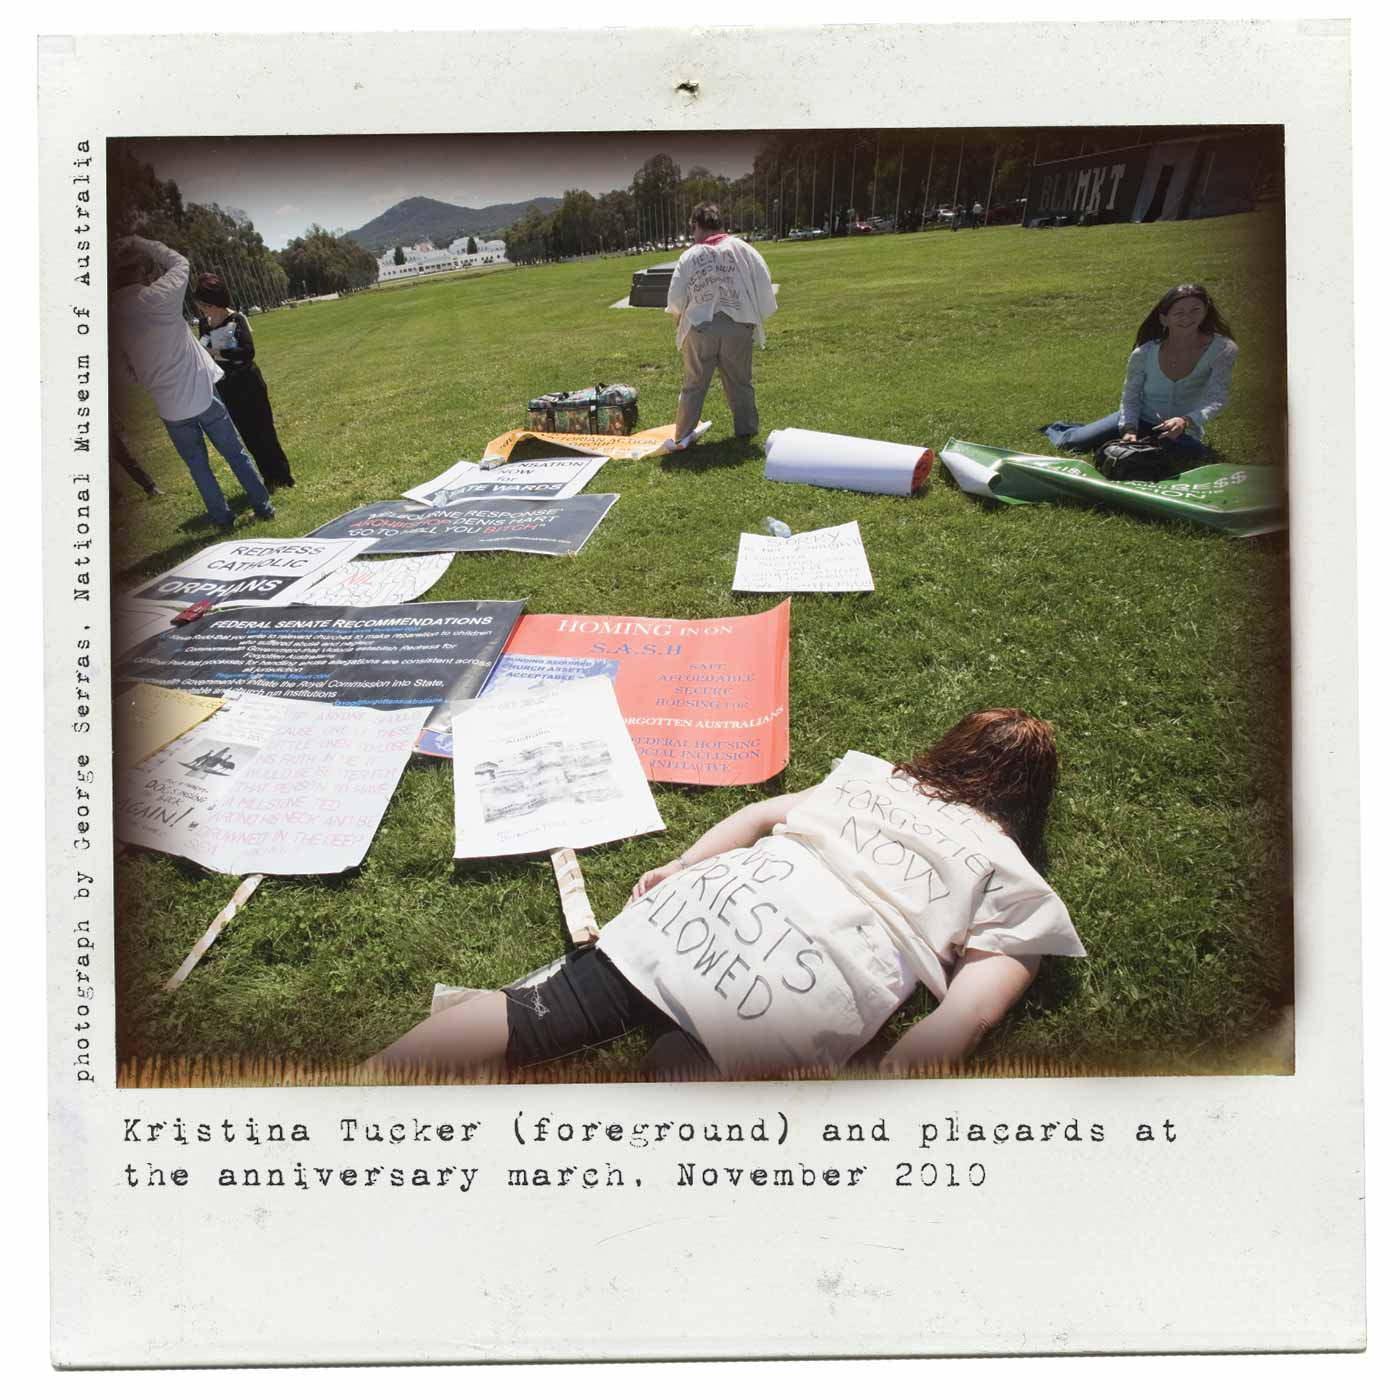 Polaroid photo showing protesters, with Old Parliament House and Mount Ainslie in the distance. In the foreground, a woman lies face down on the grass, wearing a white T-shirt covered with handwritten text 'NO PRIESTS ALLOWED'. Various protest banners are laid on the grass, and four people can be seen in the middle distance. One of them also wears a white T-shirt with writing on it. Typewritten text under the photo reads 'Kristina Tucker (foreground) and placards at the anniversary march, November 2010'. 'Photograph by George Serras, National Museum of Australia' is printed on the left side. - click to view larger image